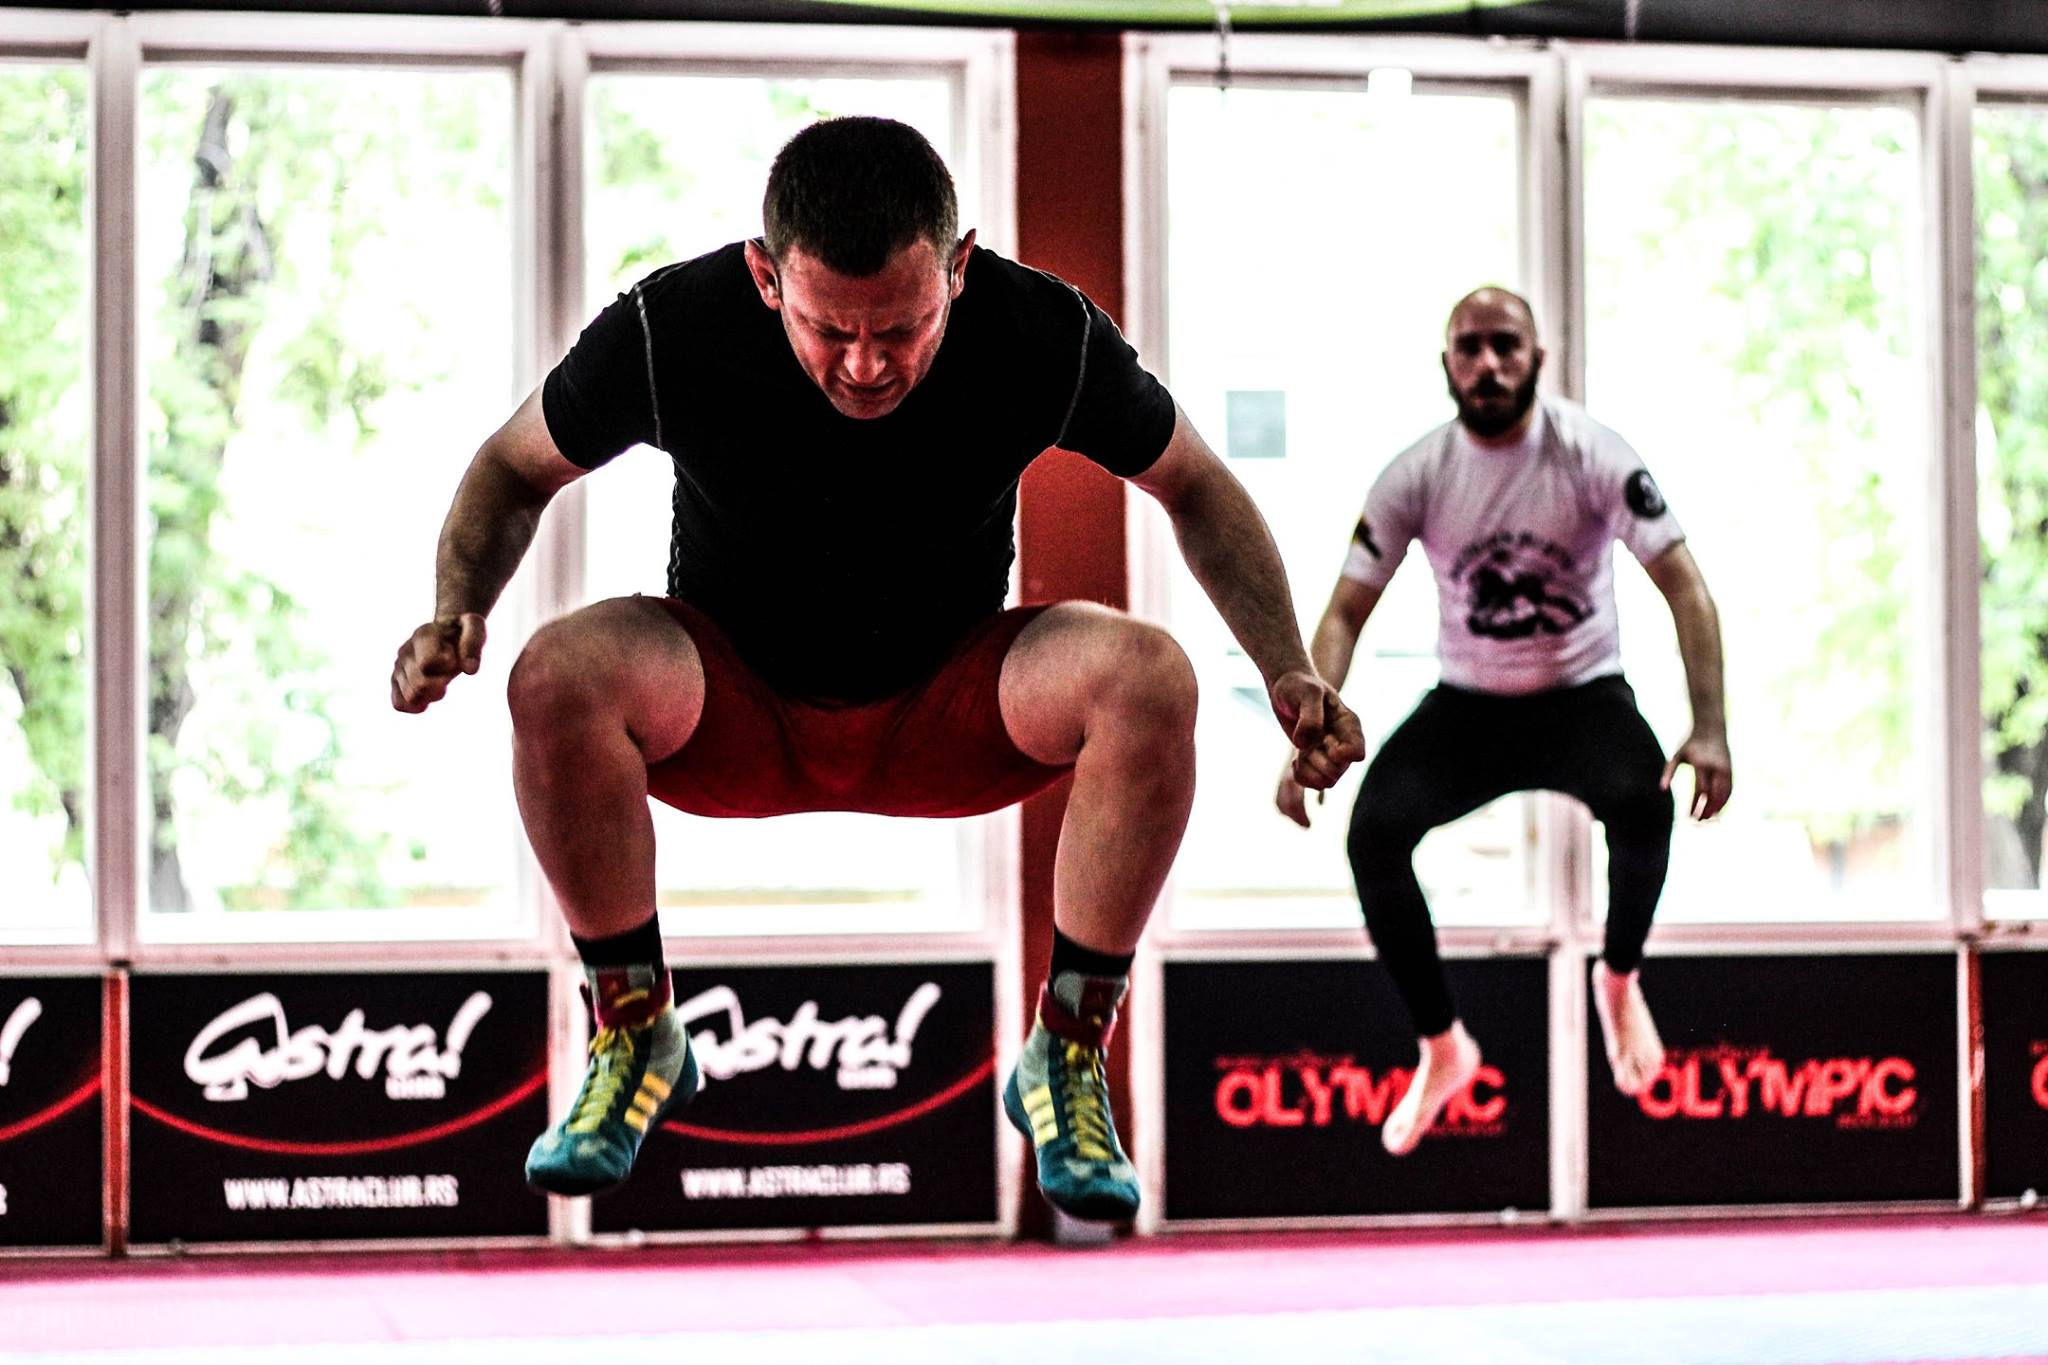 The Burpee: The # 1 Conditioning Workout for Grapplers